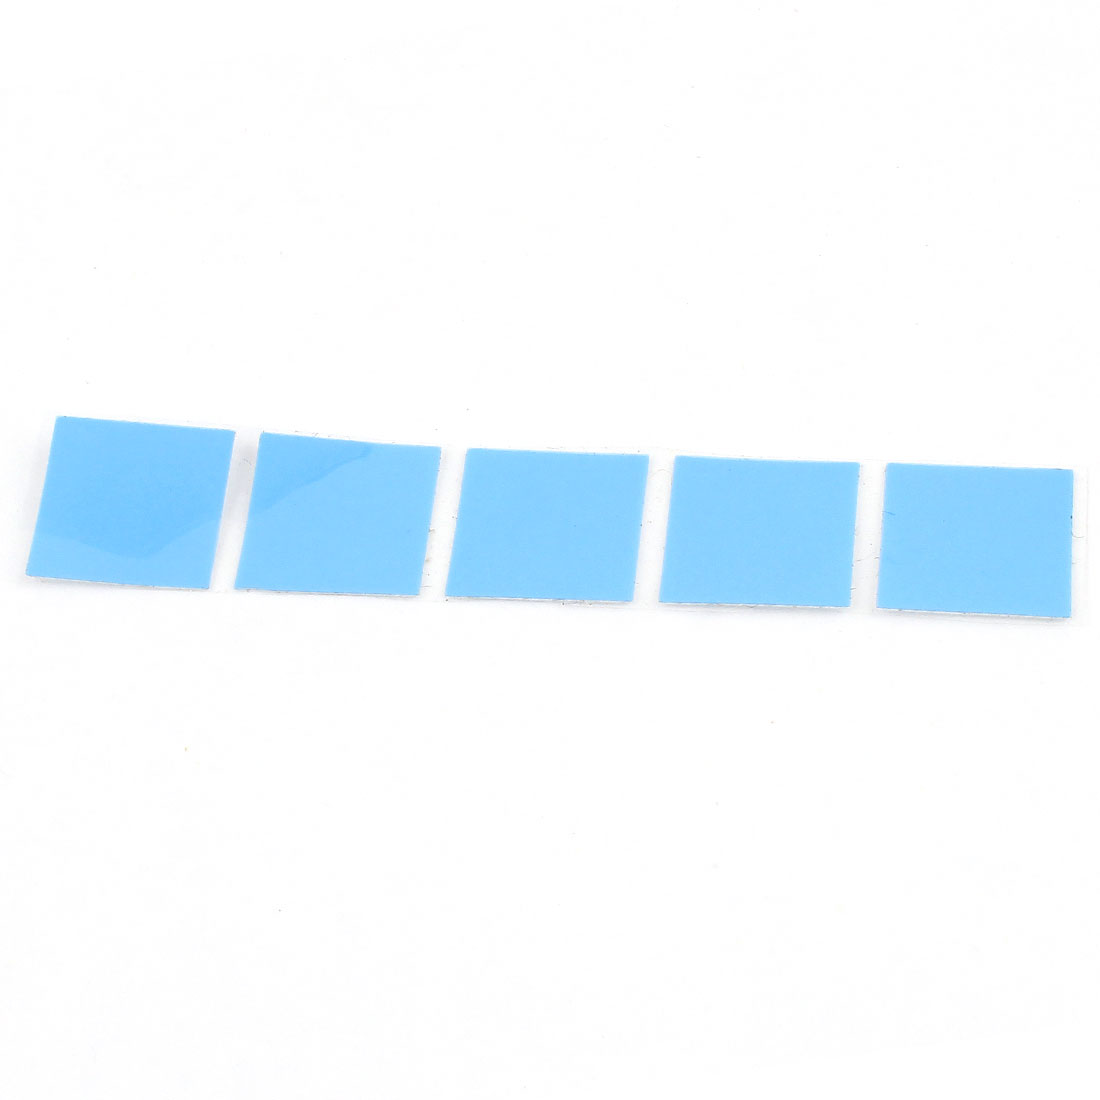 5 Pcs Thermal Conductive Heatsink Mount Stickers Blue 14x14mm